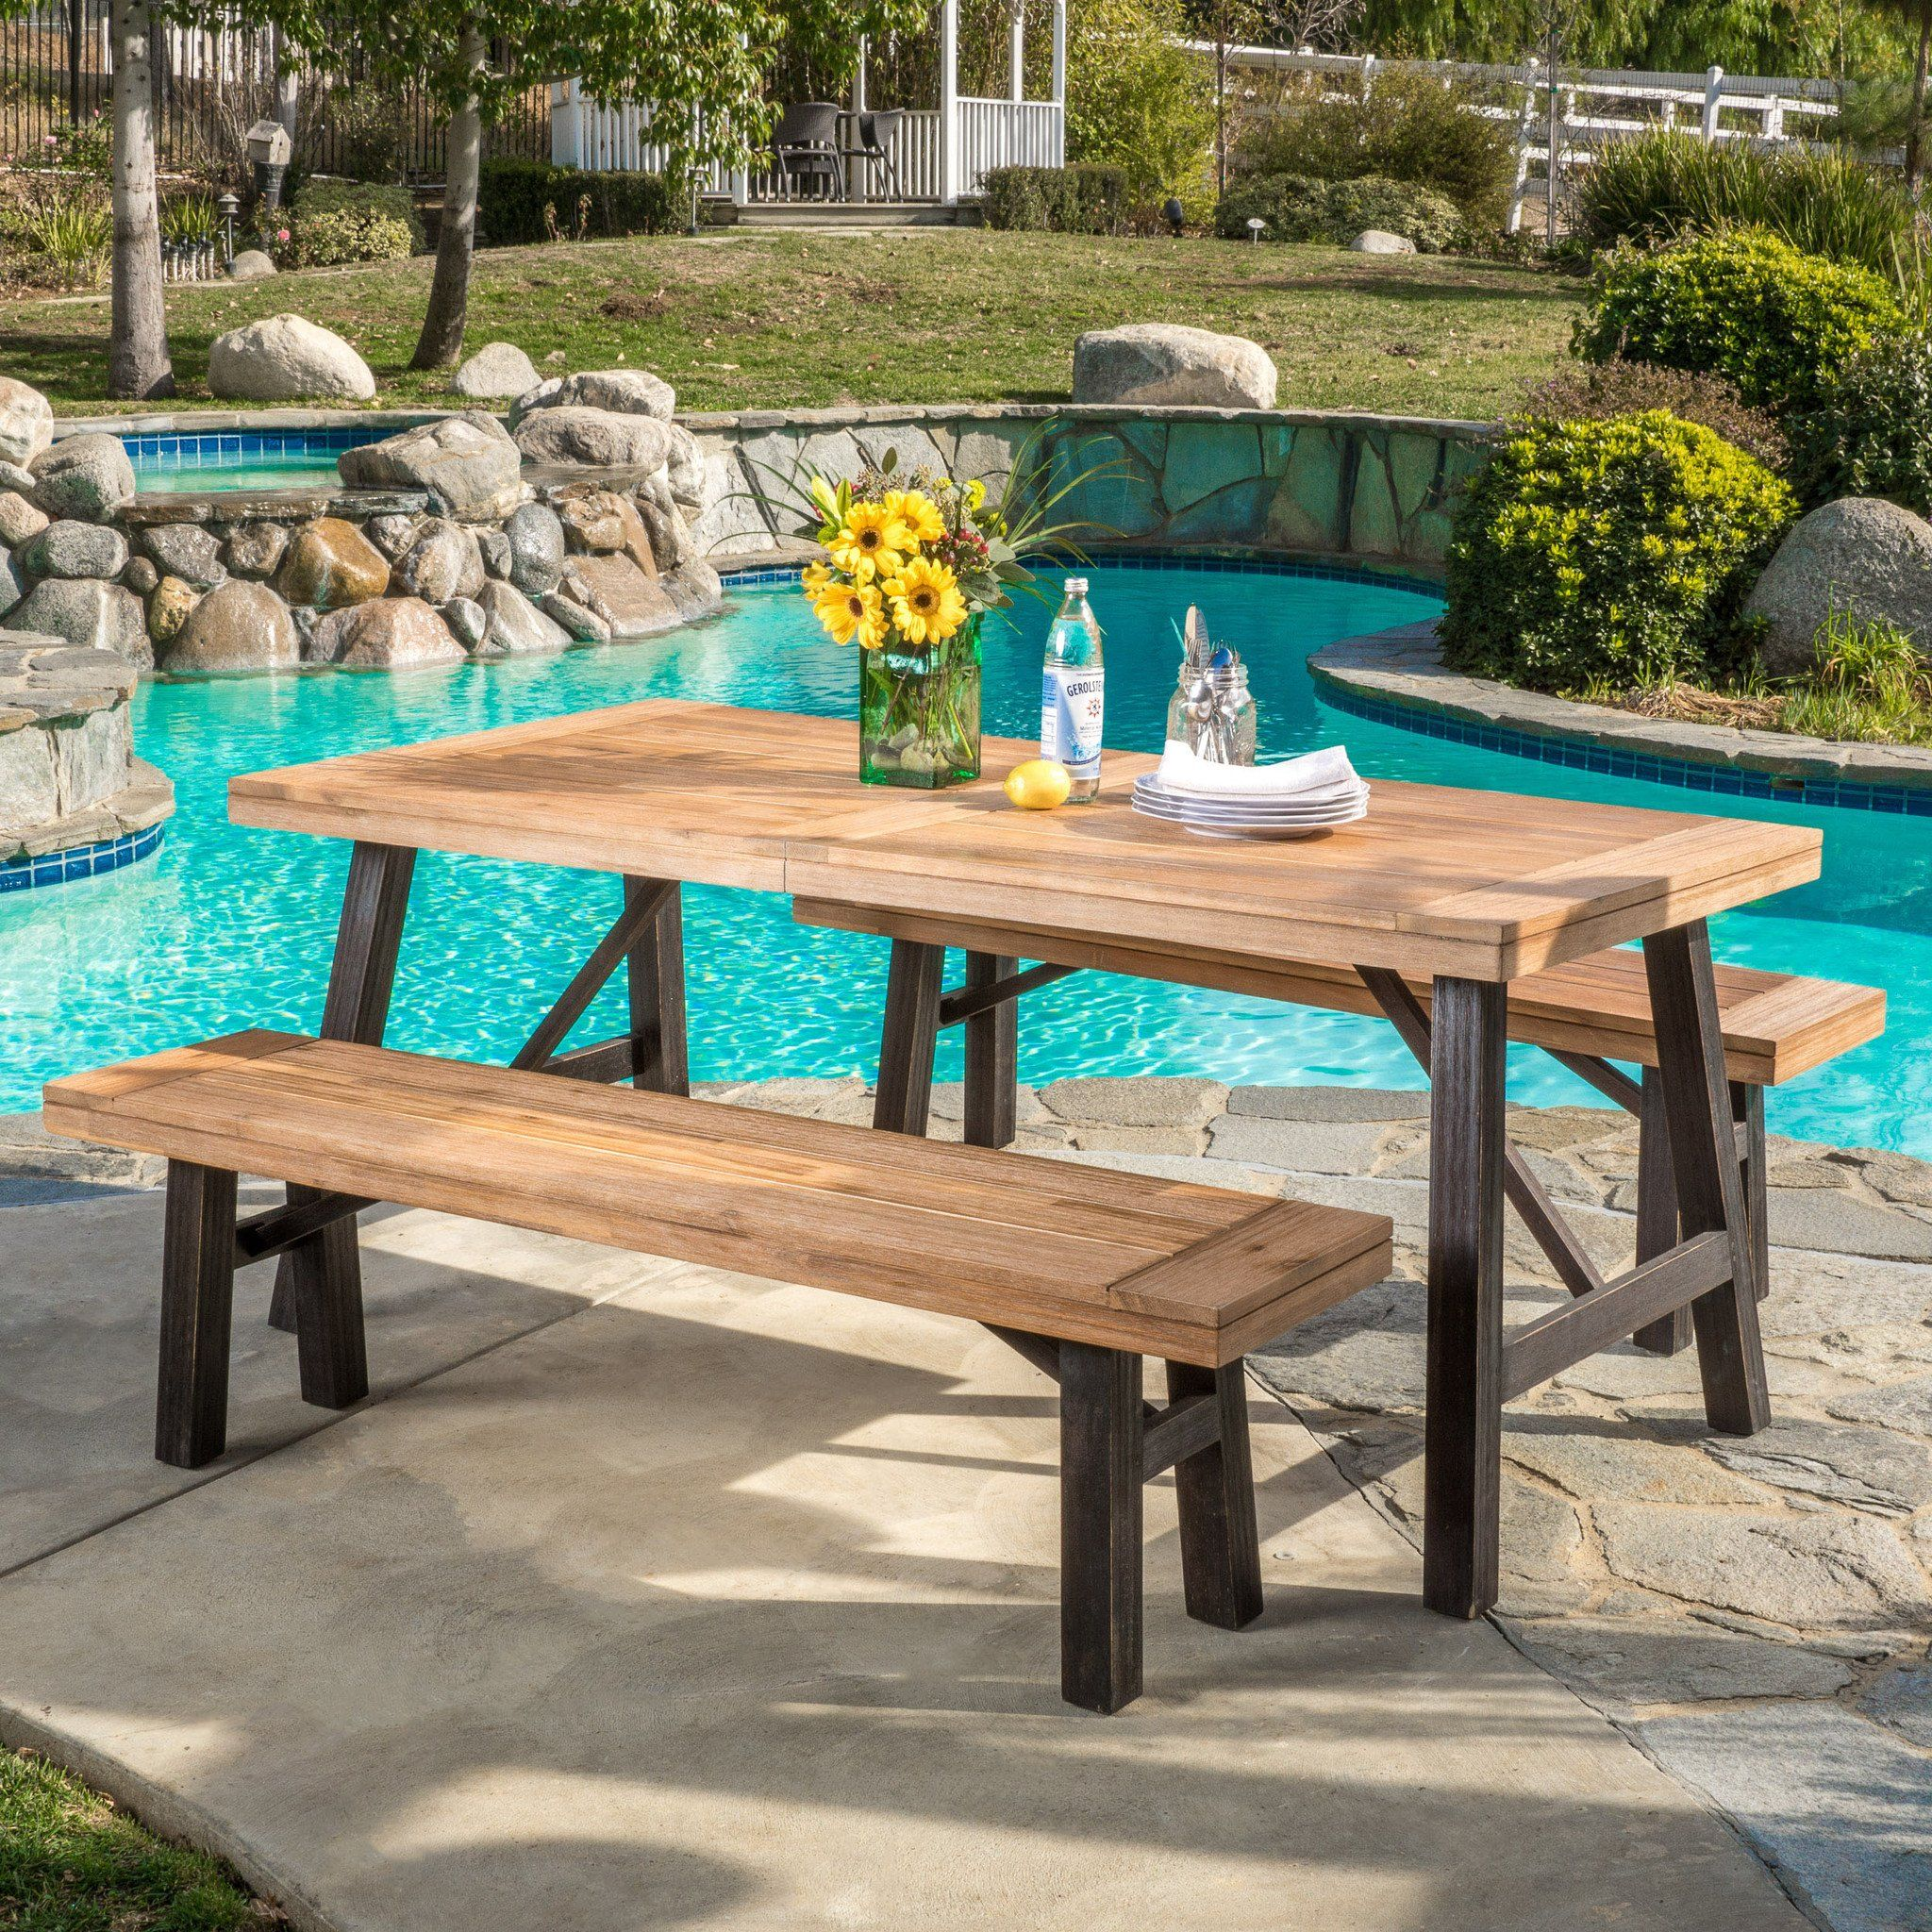 Valverde outdoor 3 piece wood picnic dining set